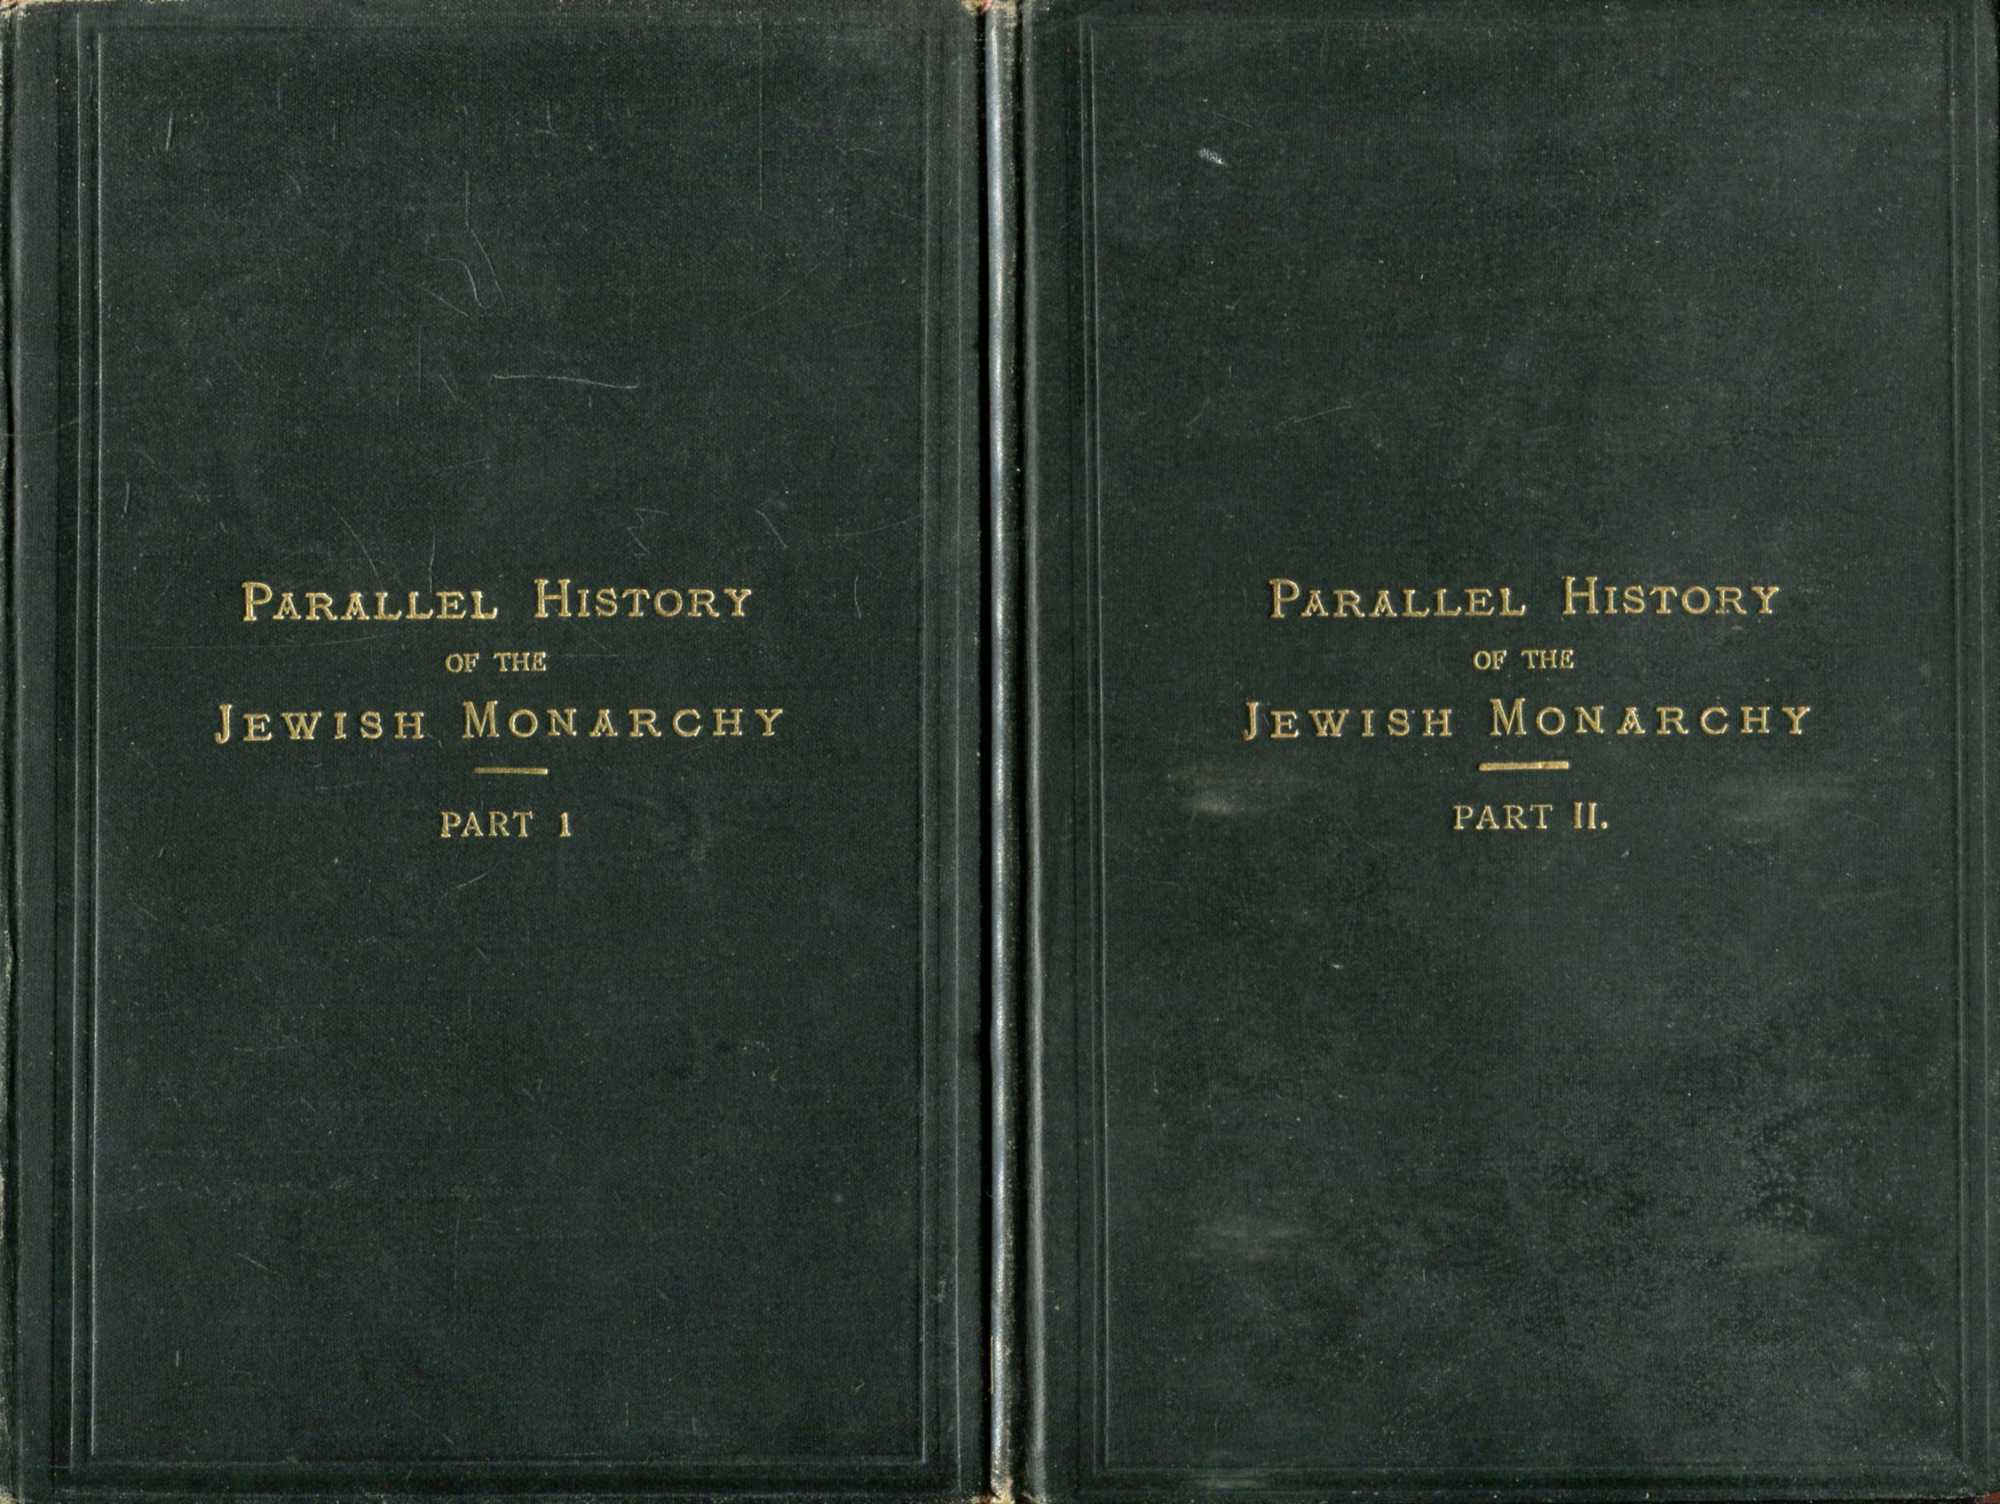 Image for The Parallel History of the Jewish Monarchy, printed in the Revised Version, 1885 Parts I & II